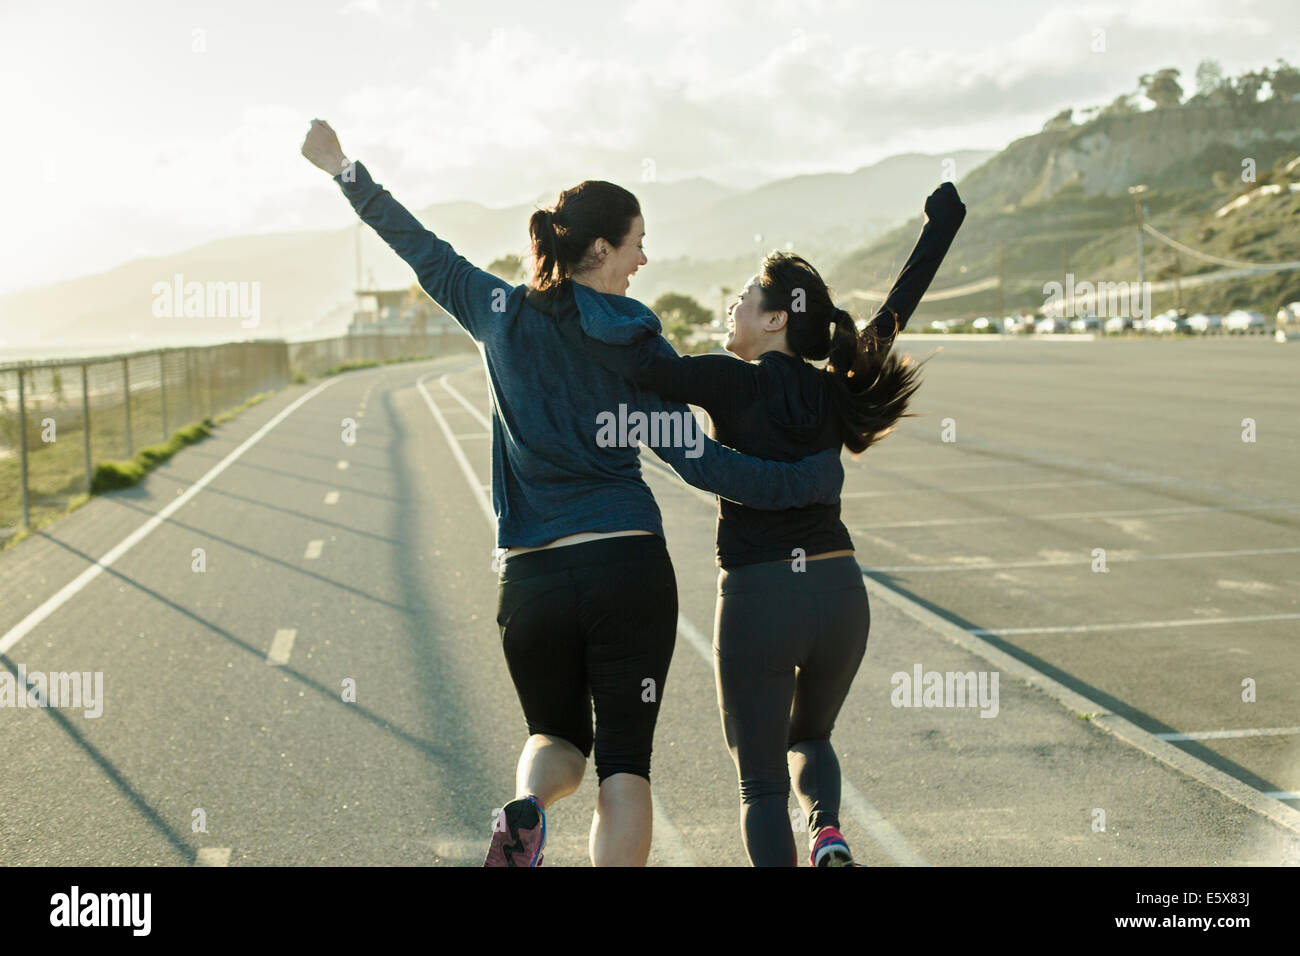 Joggers cheering on road - Stock Image